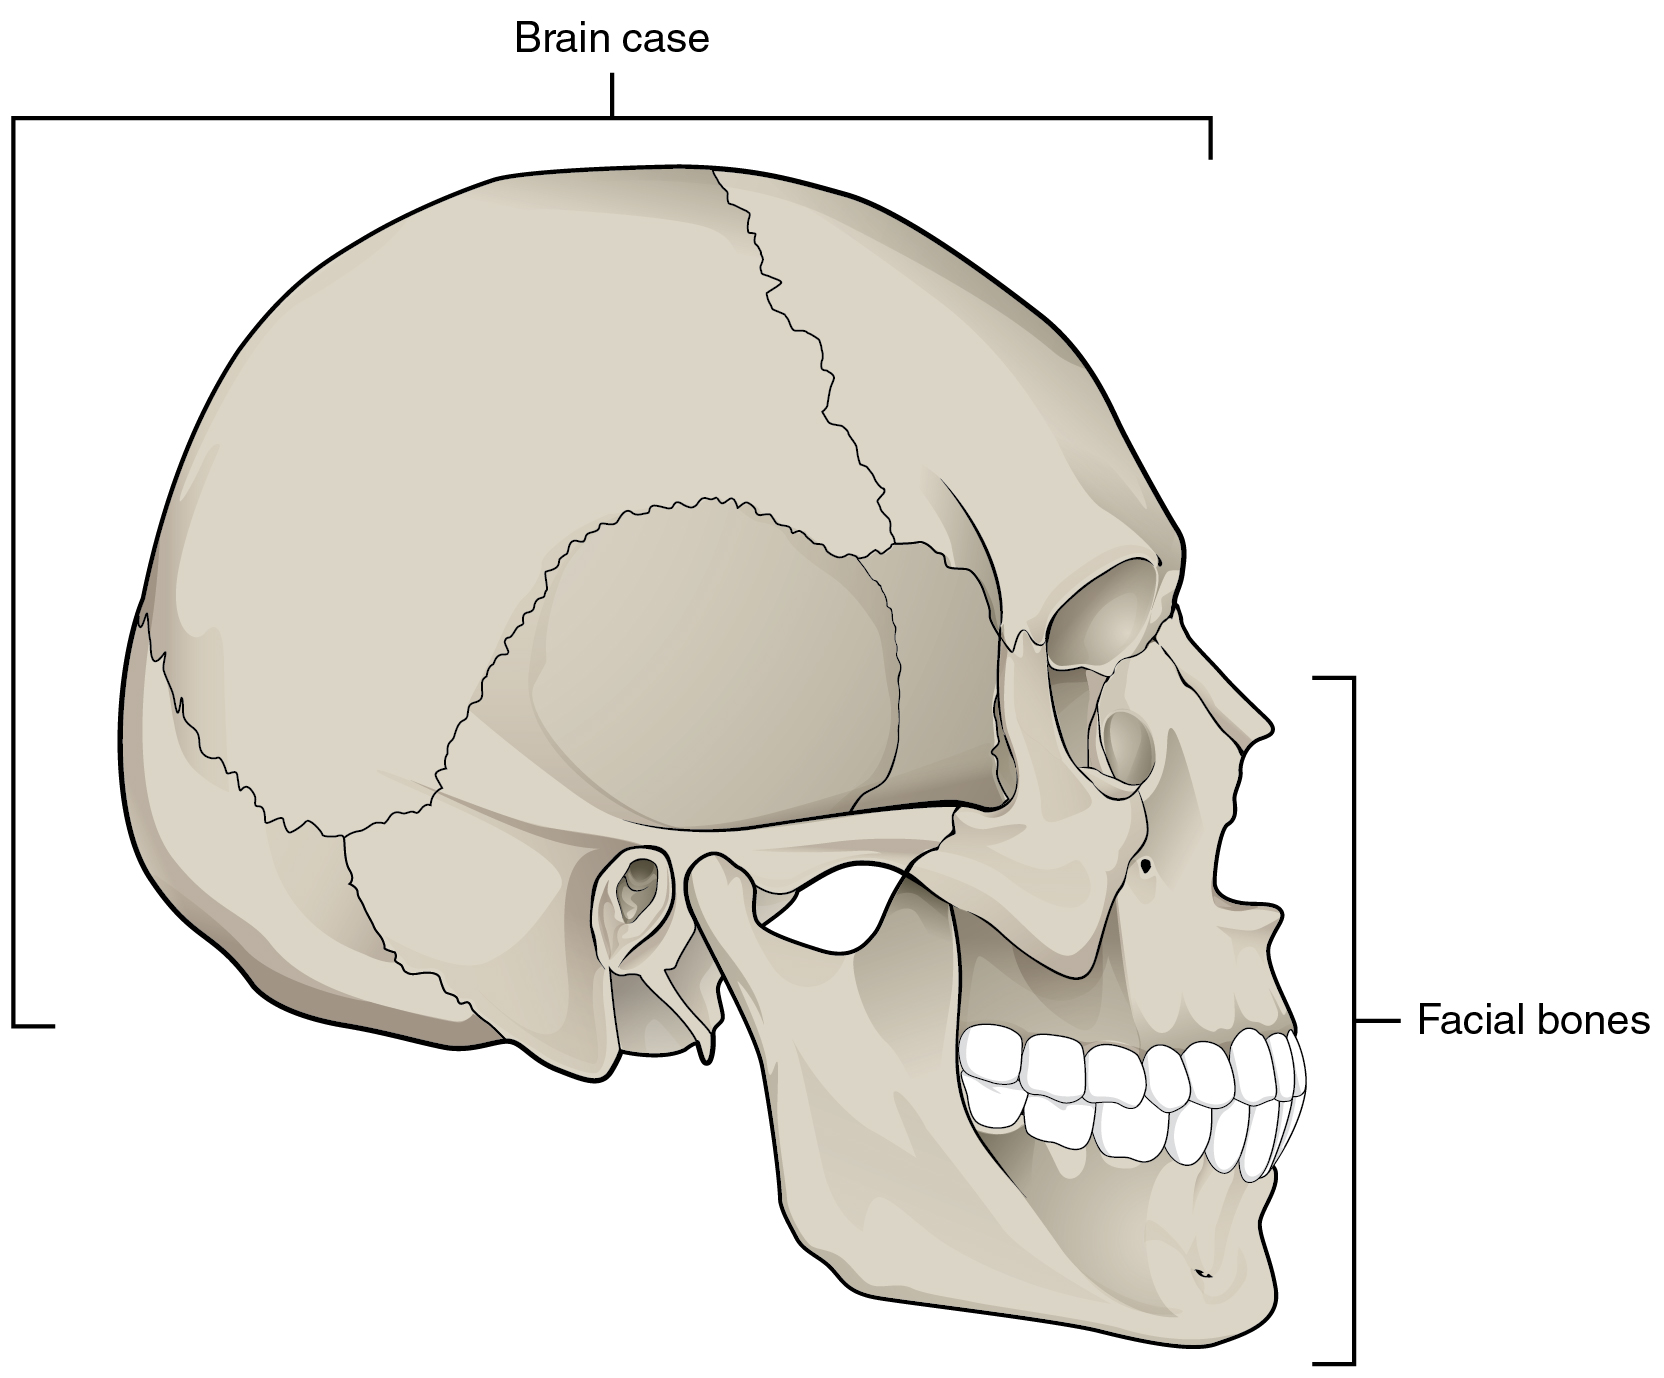 In this image, the lateral view of the human skull is shown and the brain case and facial bones are labeled.